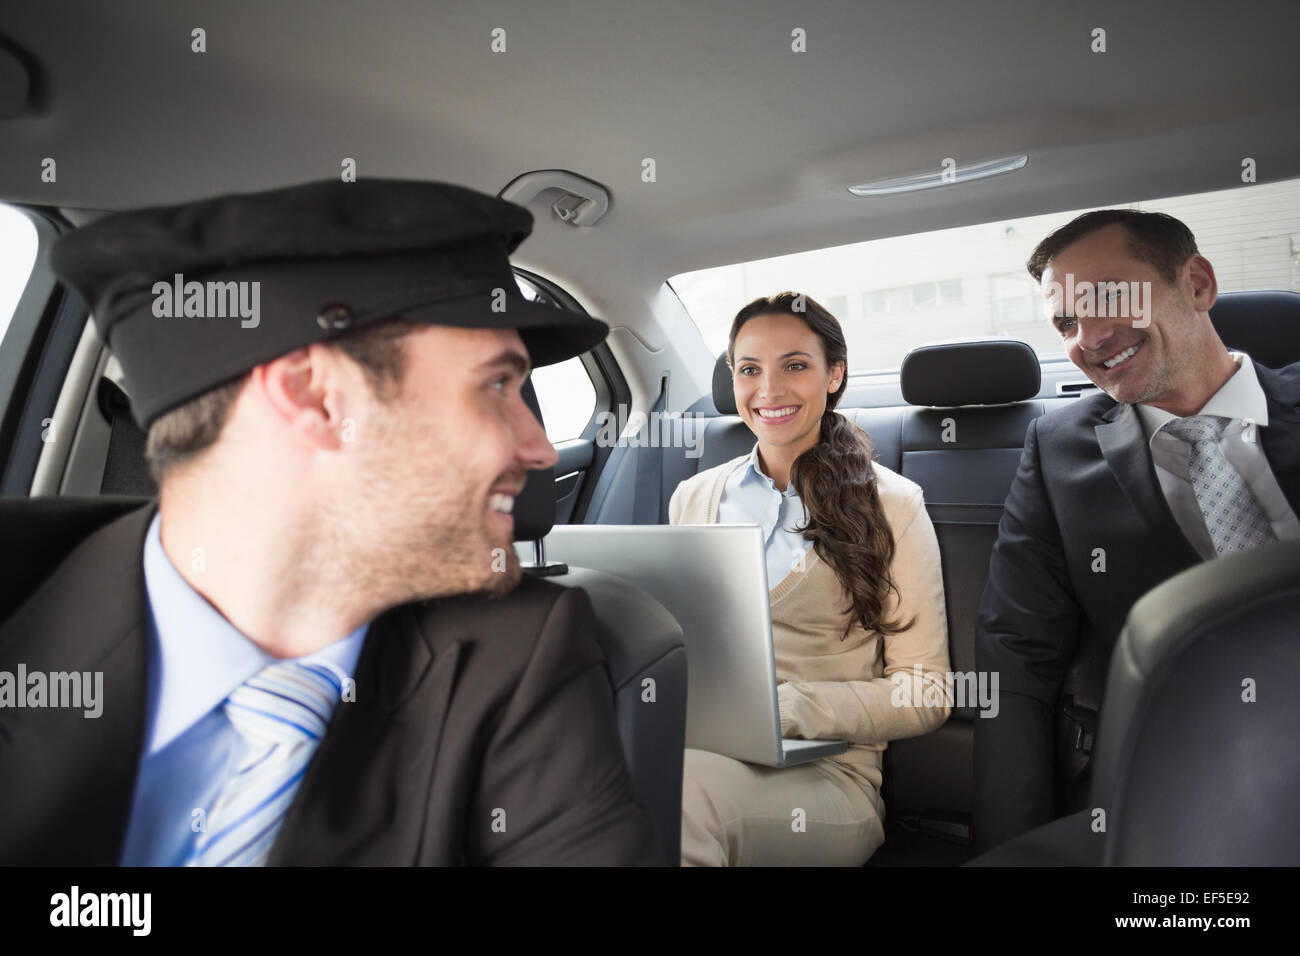 Handsome chauffeur smiling at clients - Stock Image